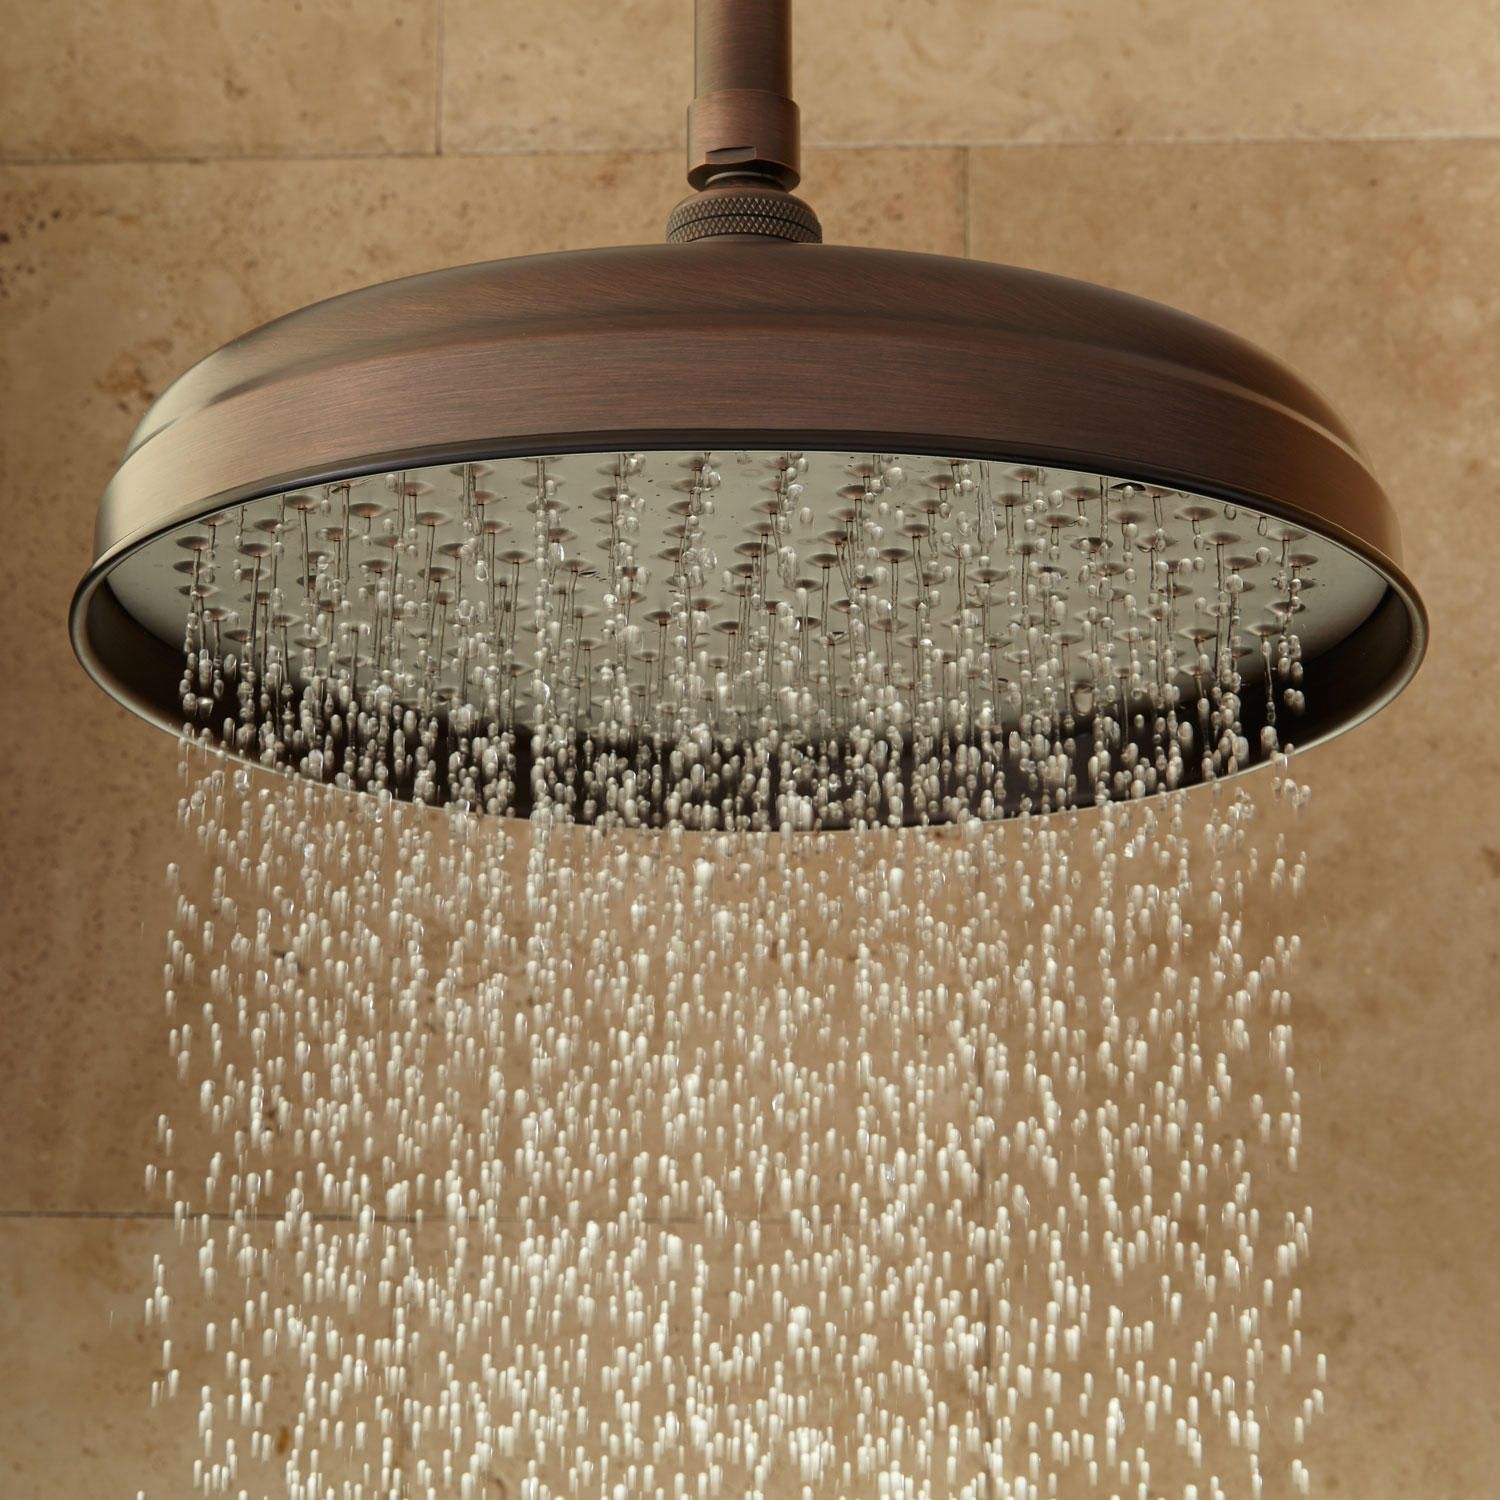 6 Lambert Rainfall Shower Head In 19 Extended Arm In Oil Rubbed